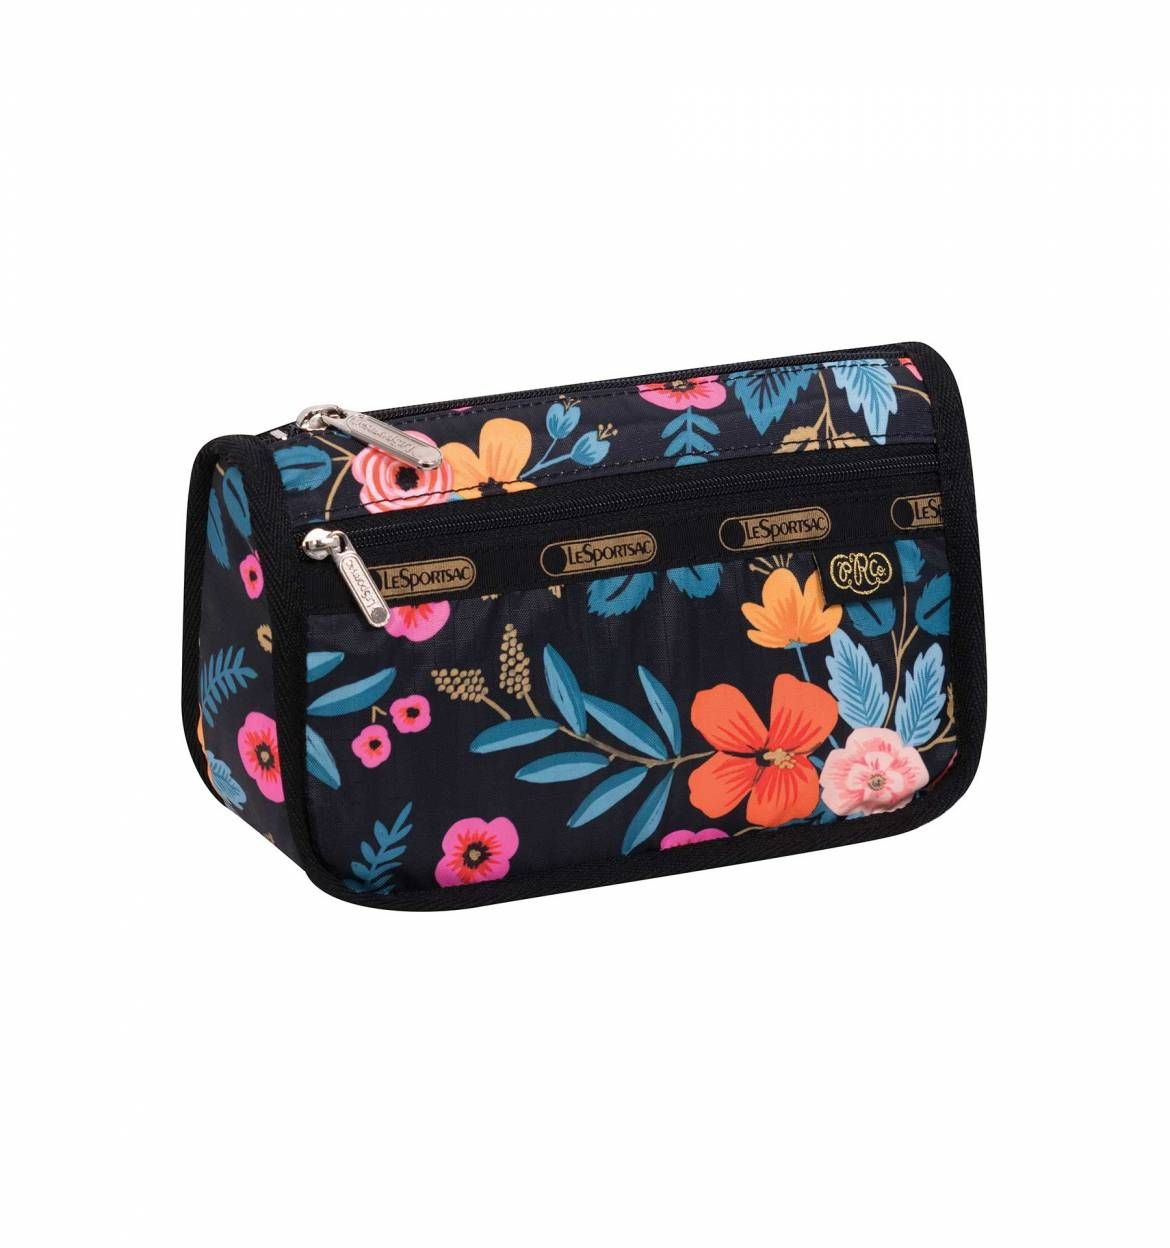 33850763aa0 Travel Cosmetic Marion Floral   Makeup Bags   Pinterest   Bags ...